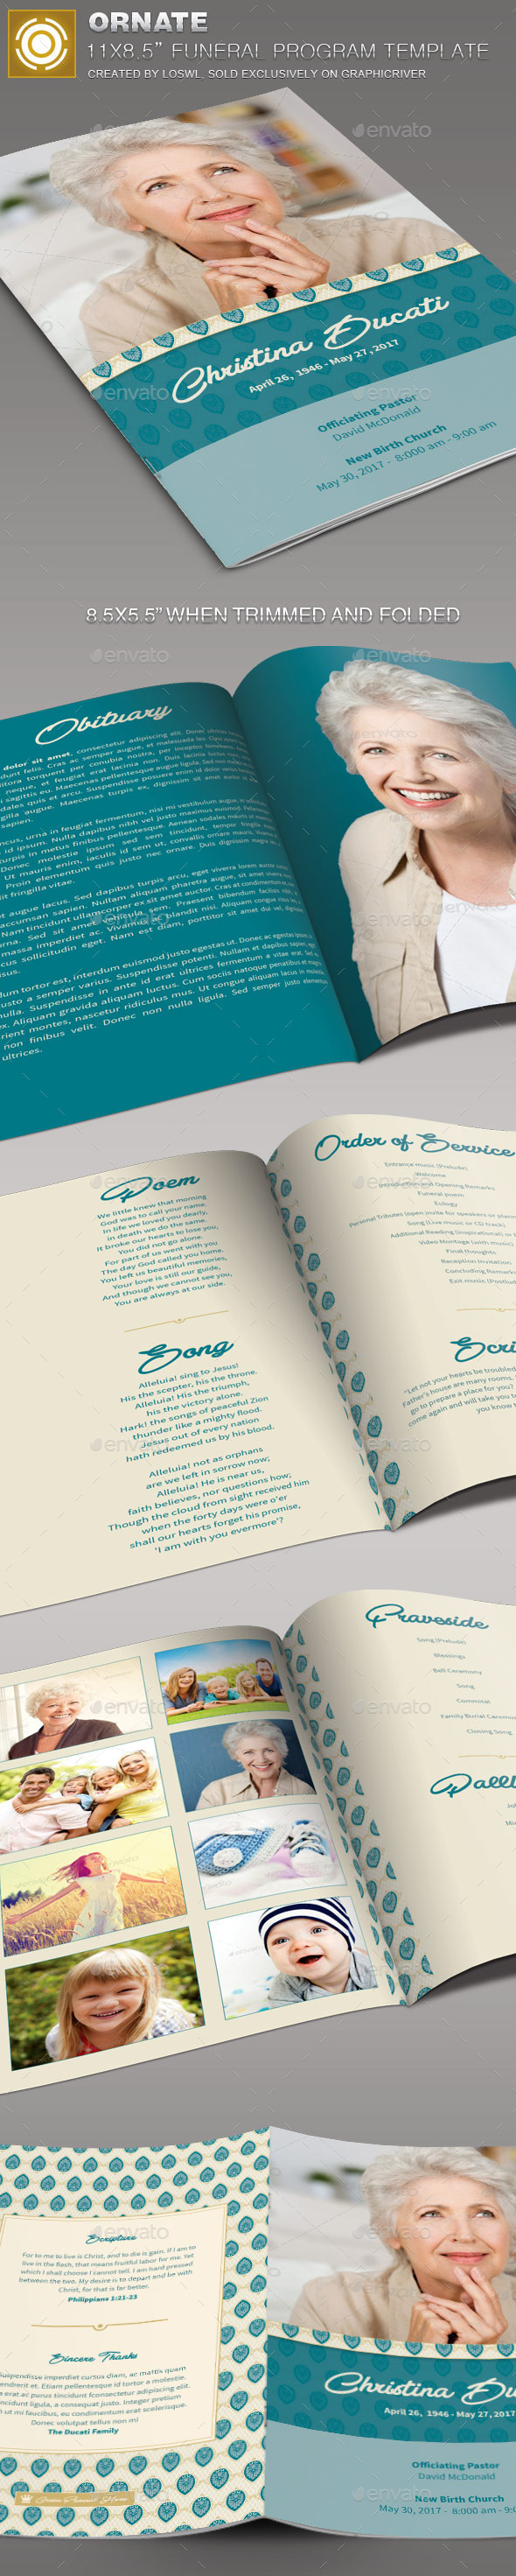 GraphicRiver Ornate Funeral Program Template 11424076